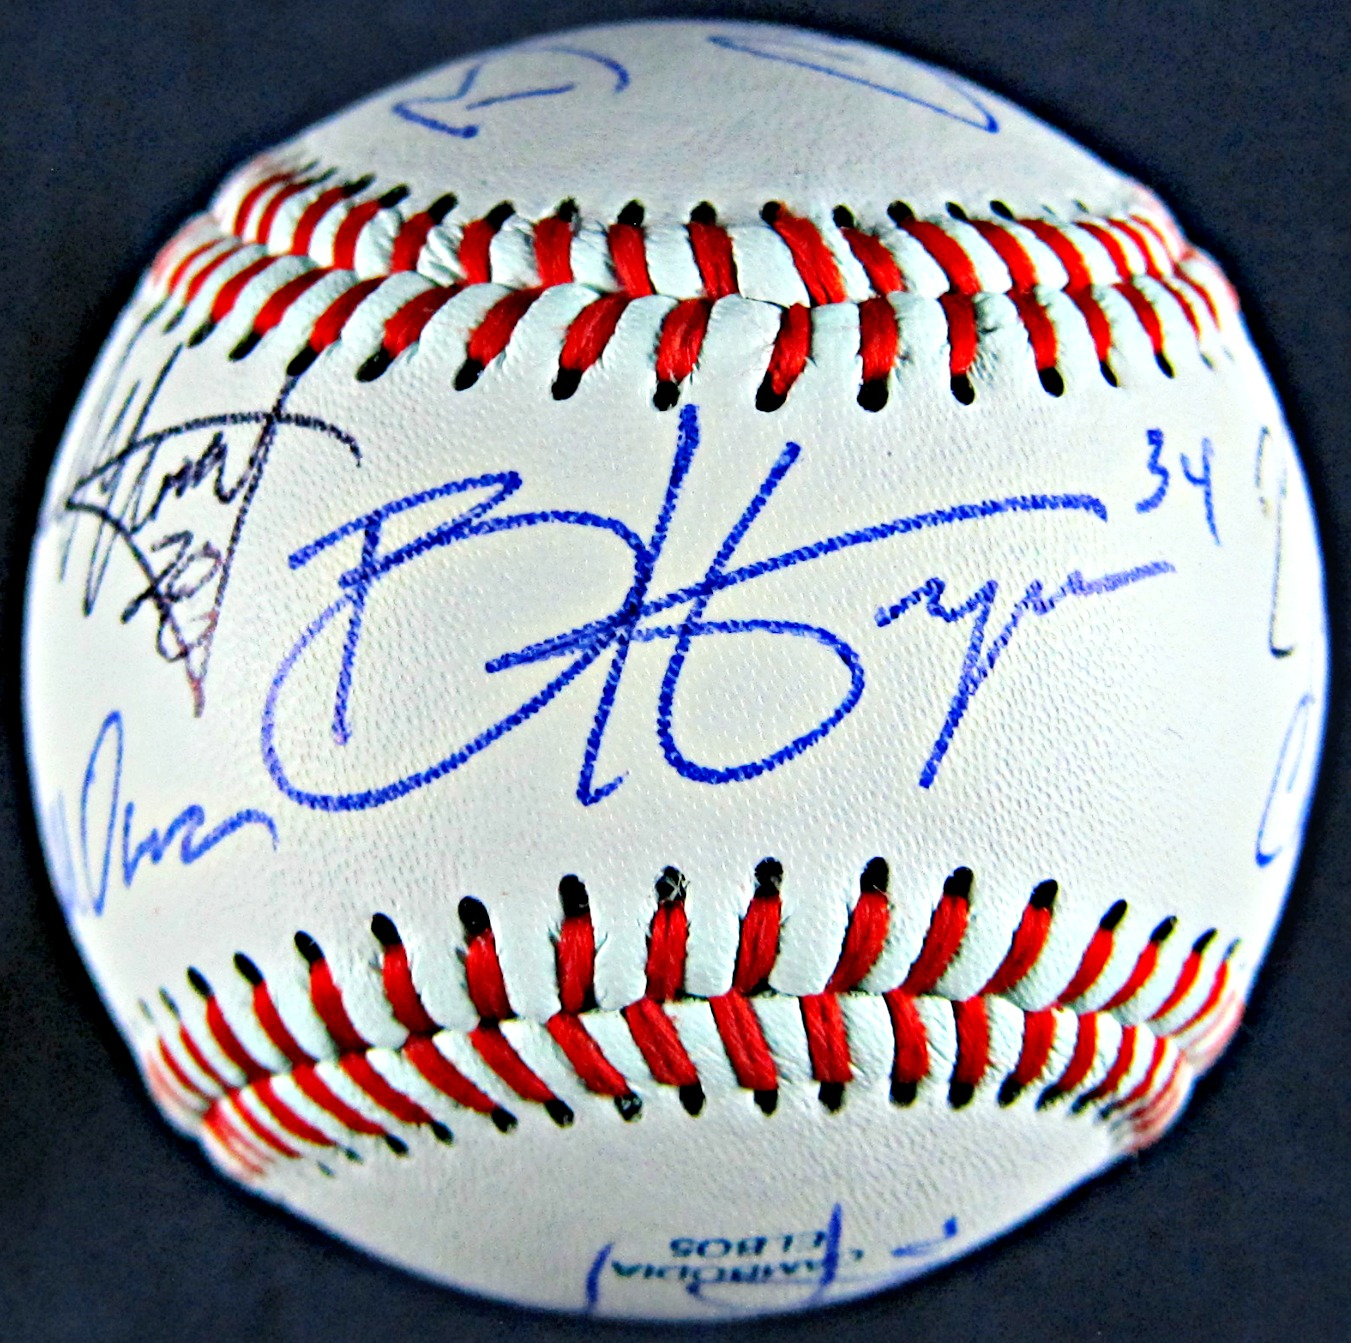 2017 NL All Star Autographed Baseball